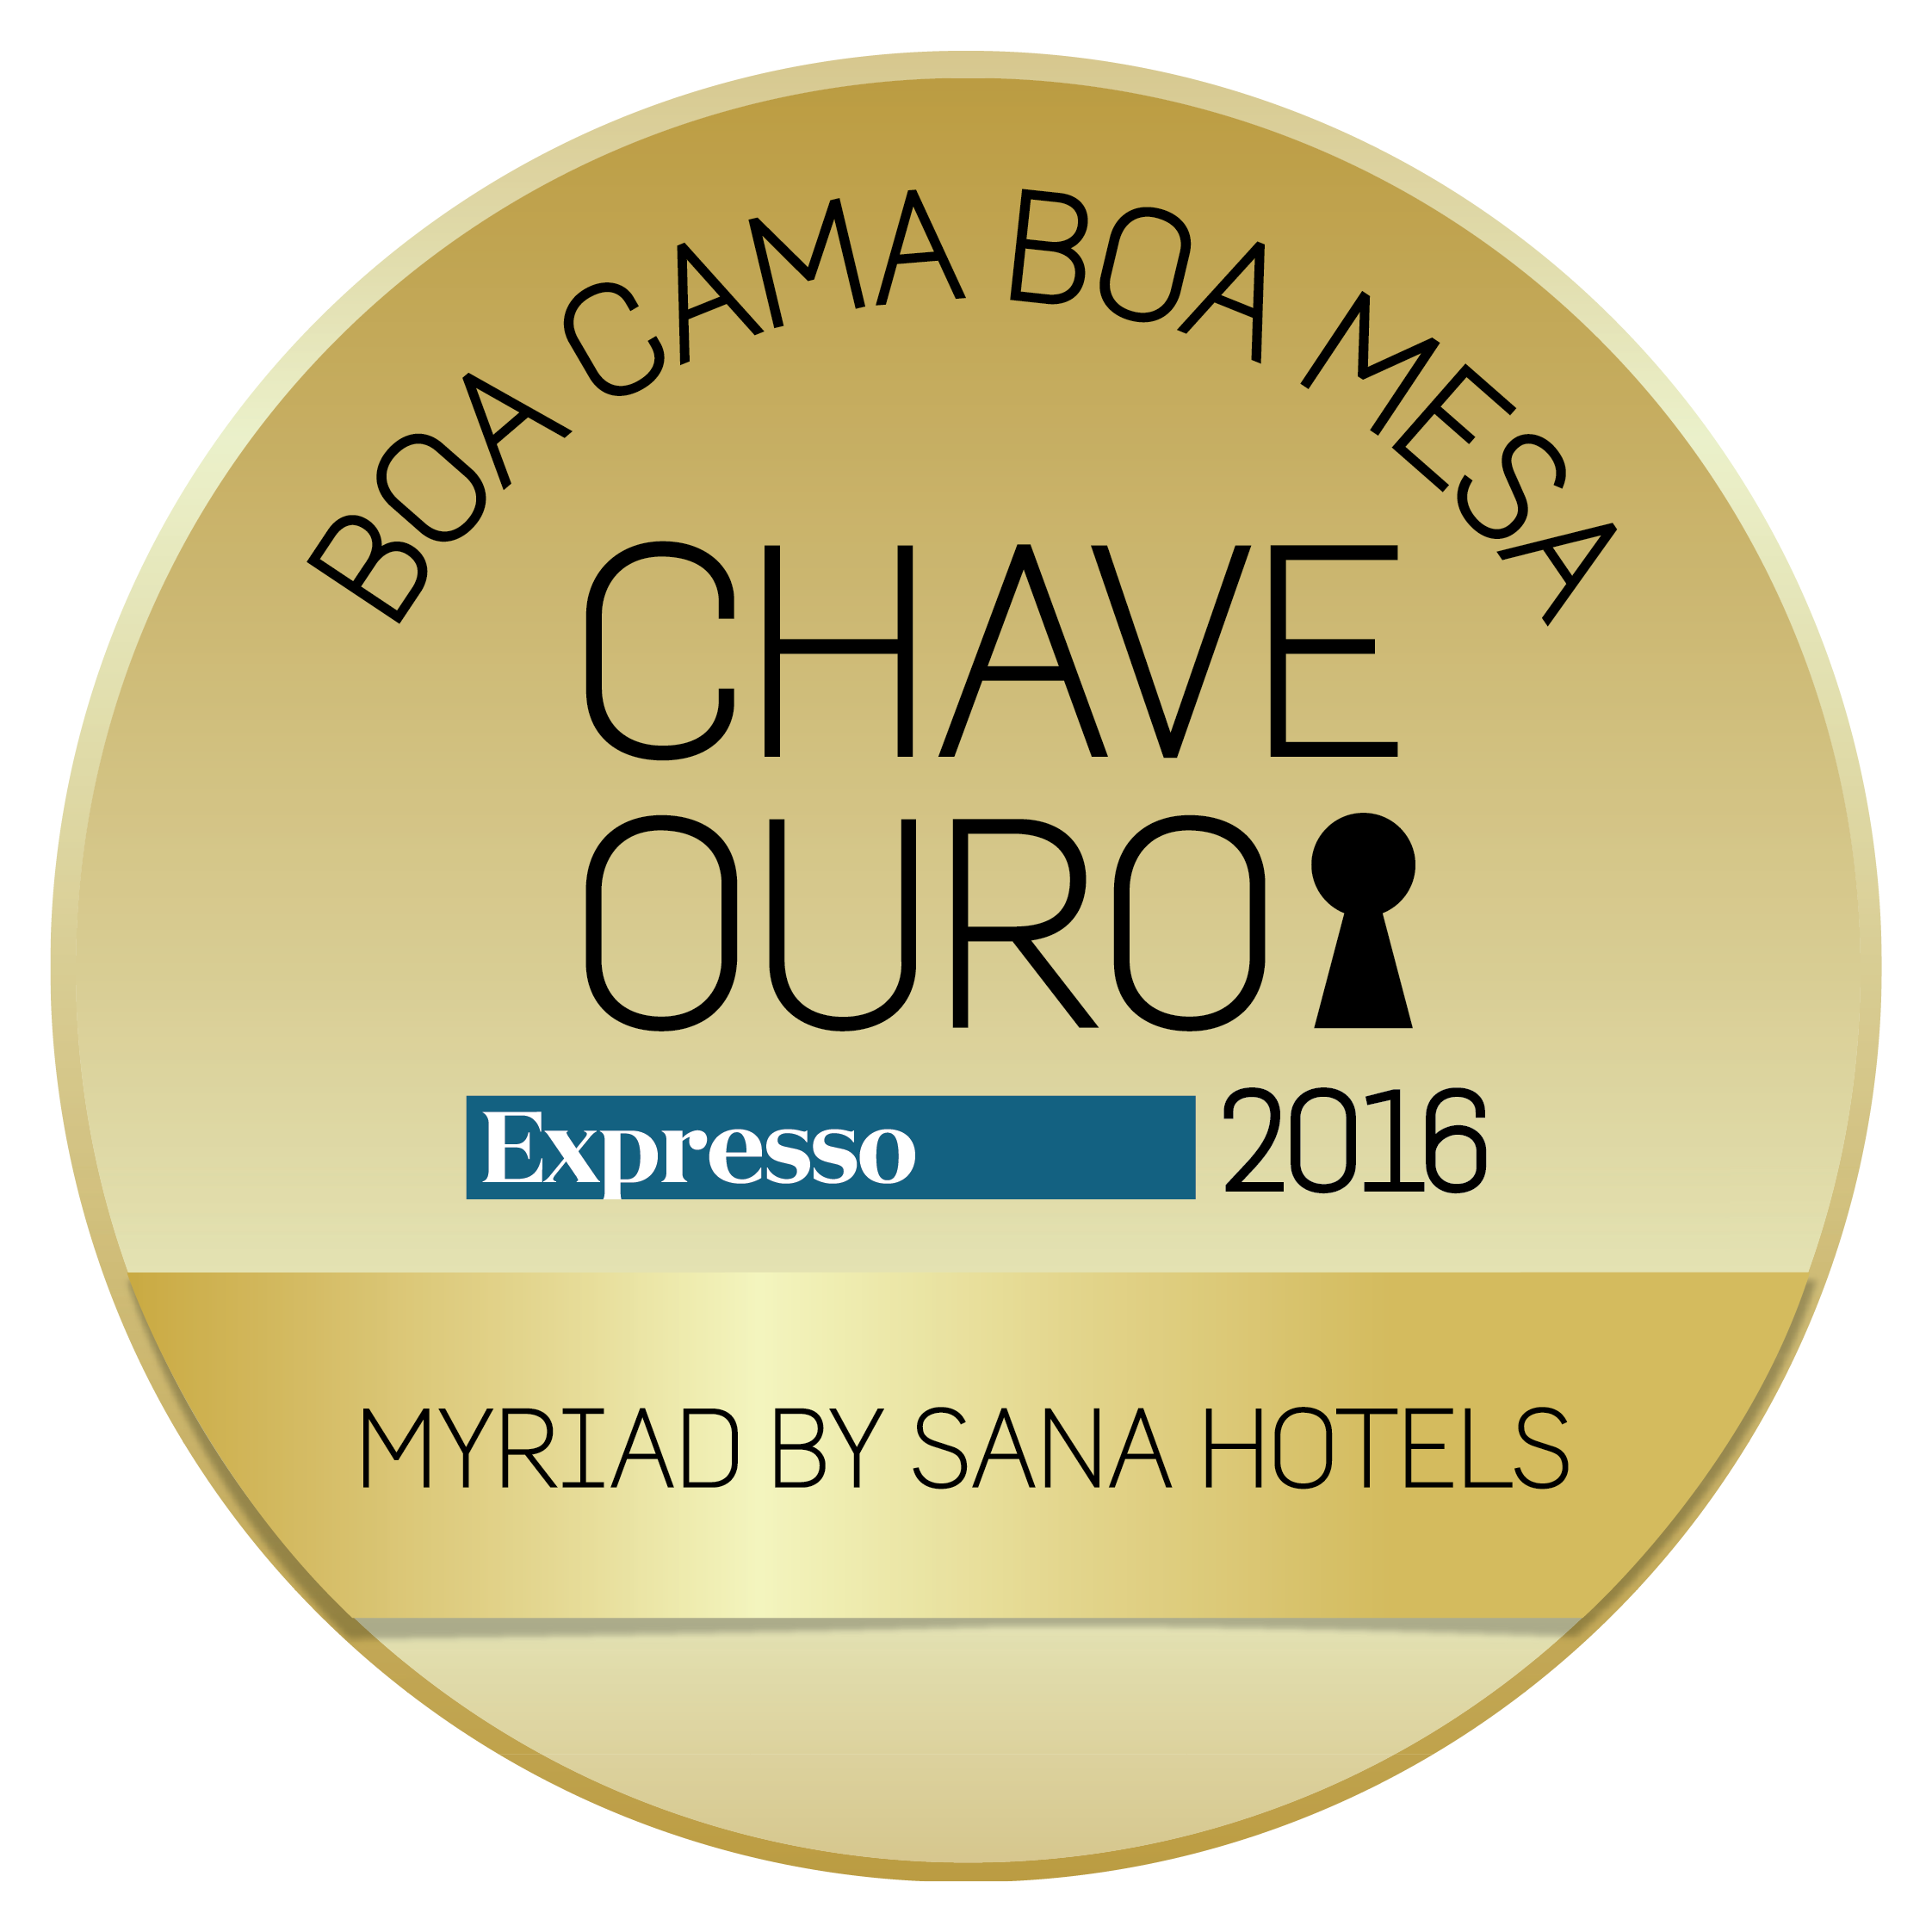 Boa Cama Boa Mesa - Golden Key Award 2016